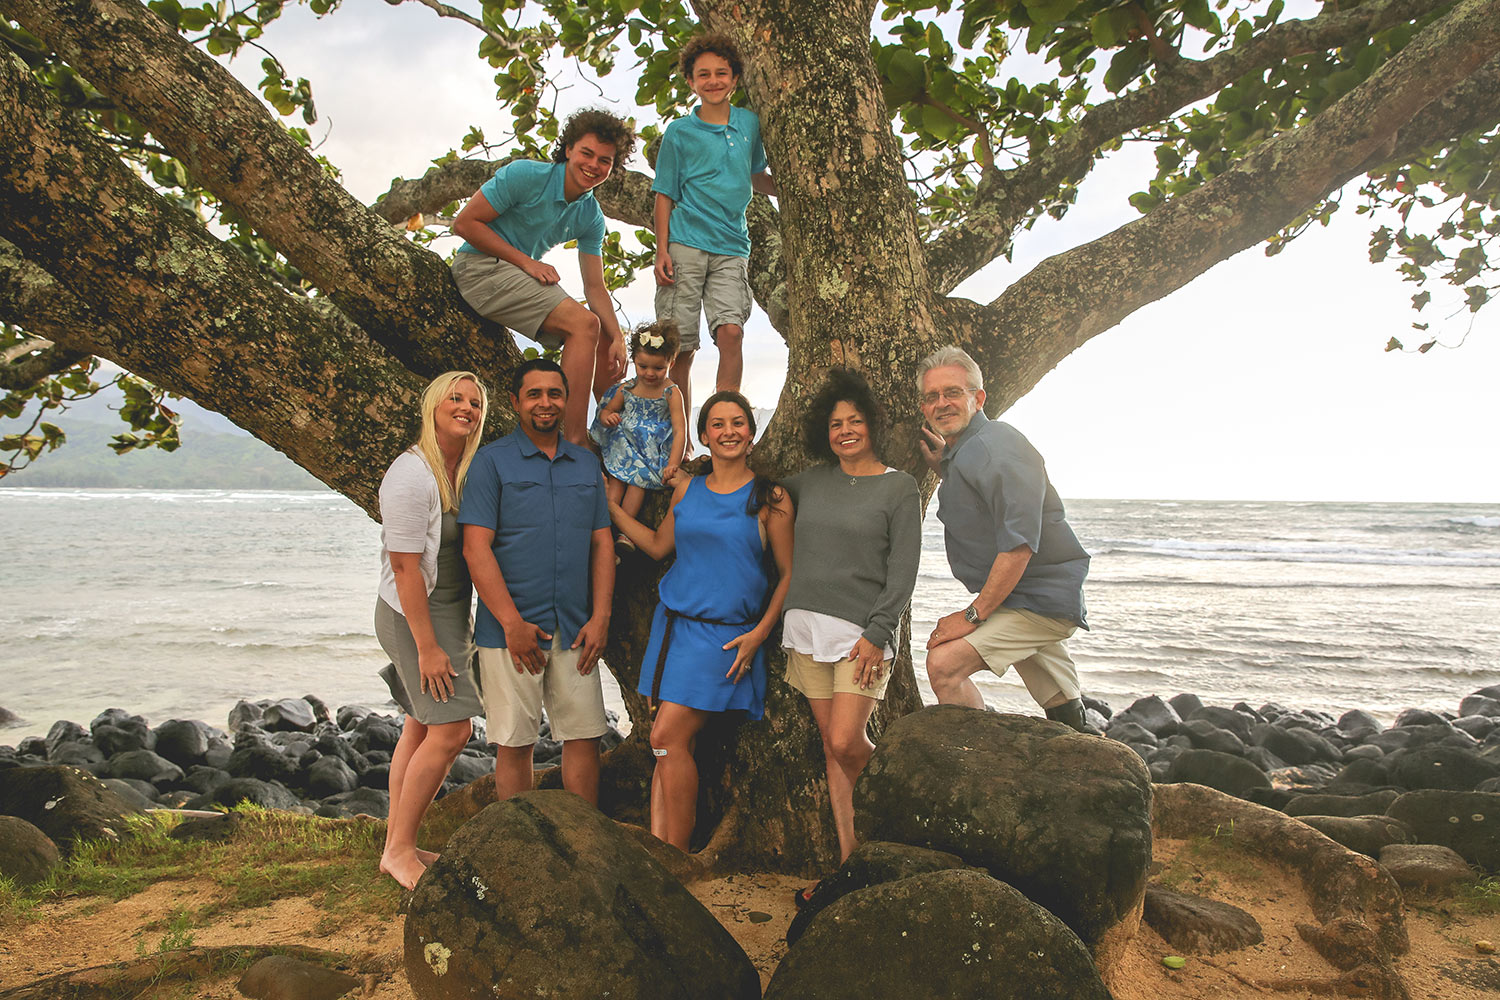 family-photography-session-kauai-birch.jpg